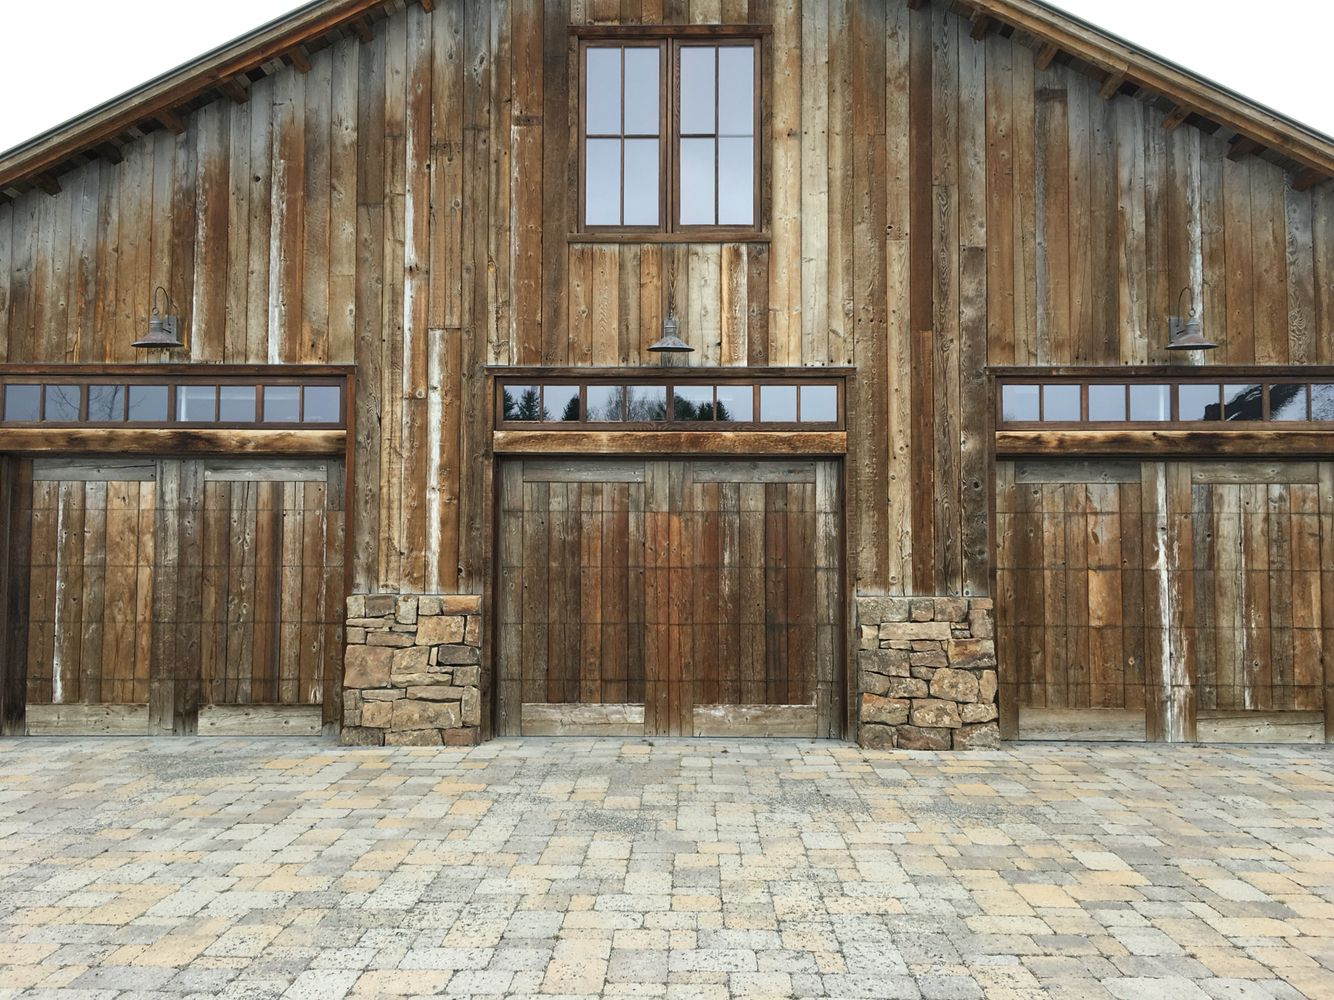 10 Ft Garage Door With Carriage Double Garage Door Style Home Interiors Garage Door Design Garage Doors Wooden Garage Doors